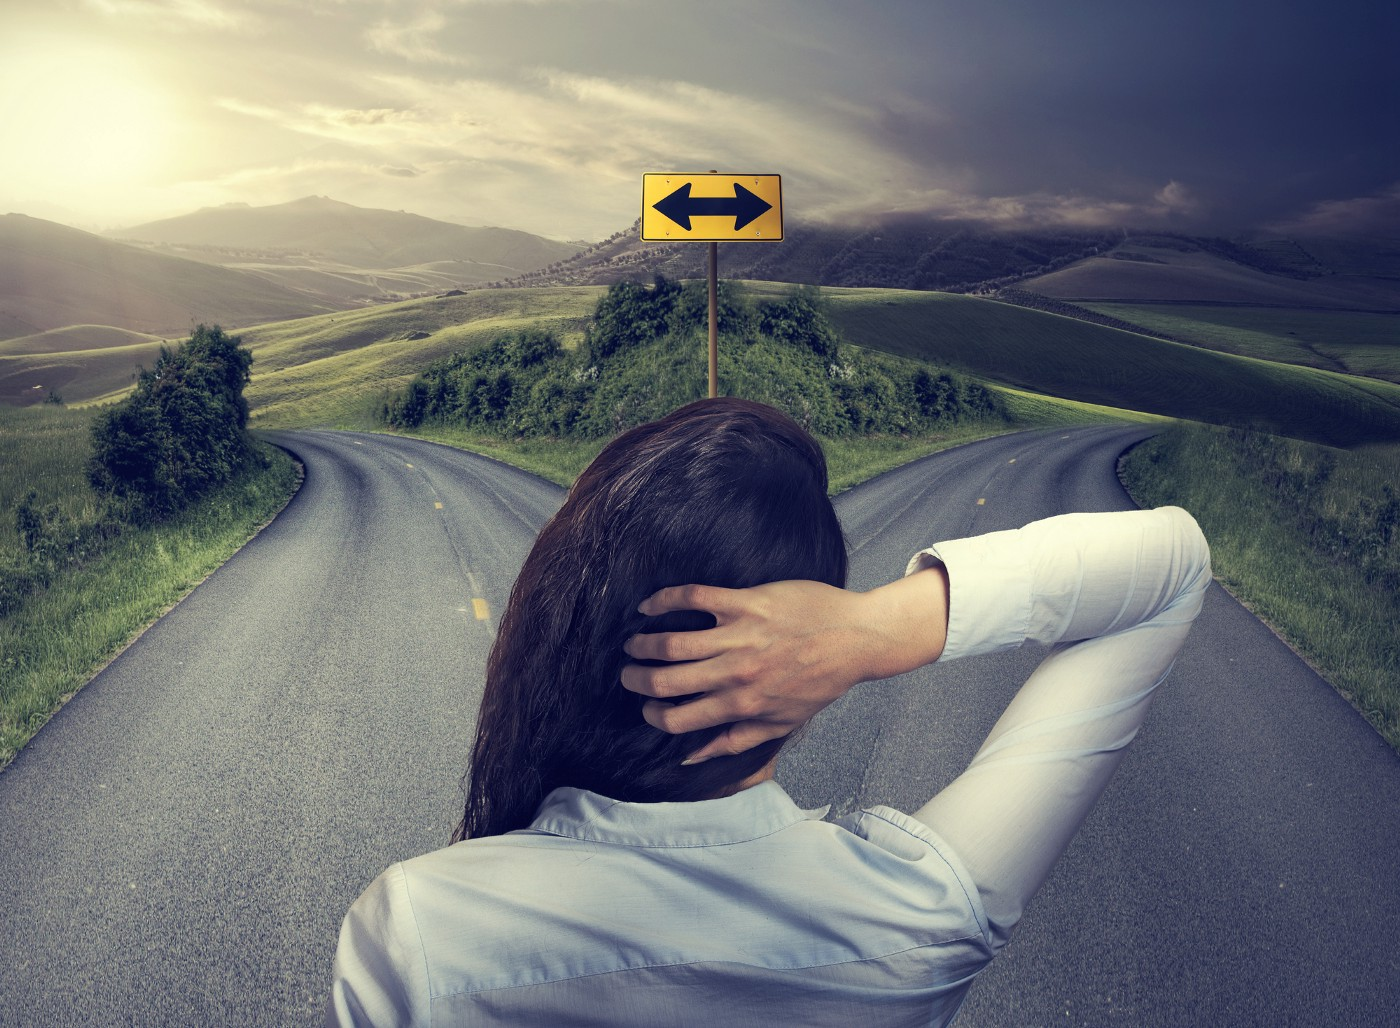 Women looking toward a fork (decision) in the road.